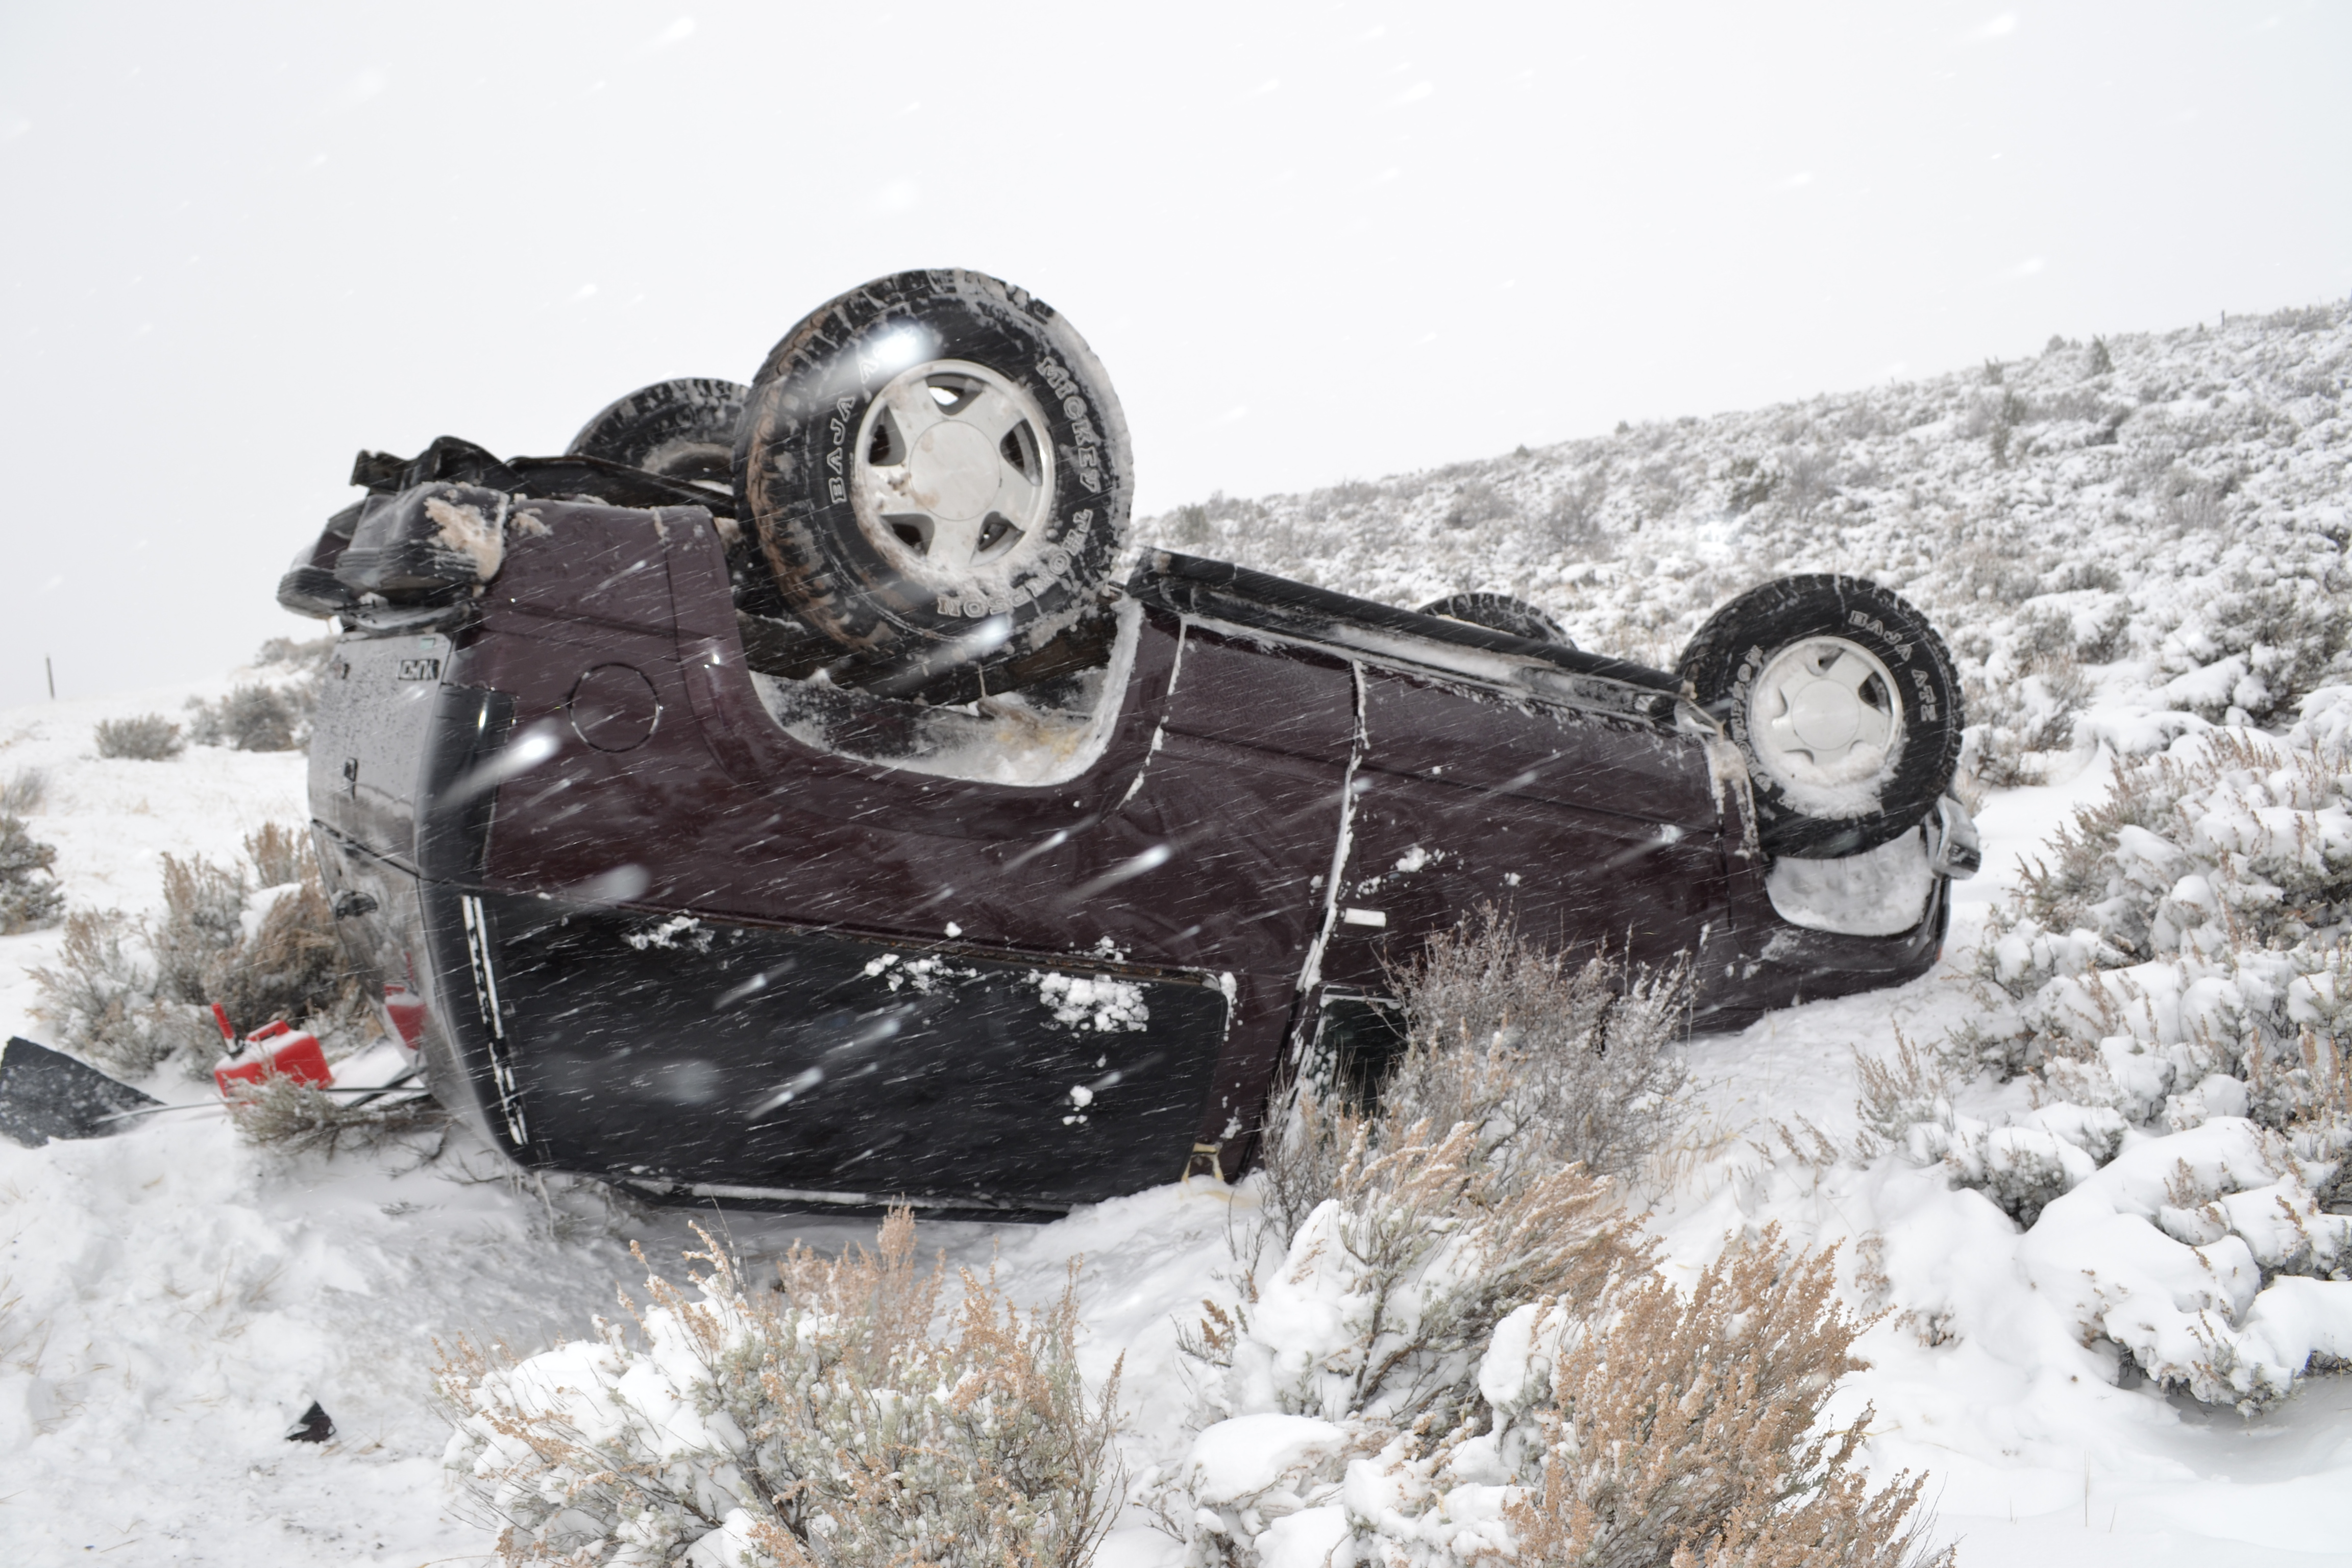 A car rolled on SR-130 in snowy weather, Nov. 16, 2015 | Photo by Emily Hammer, St. George News